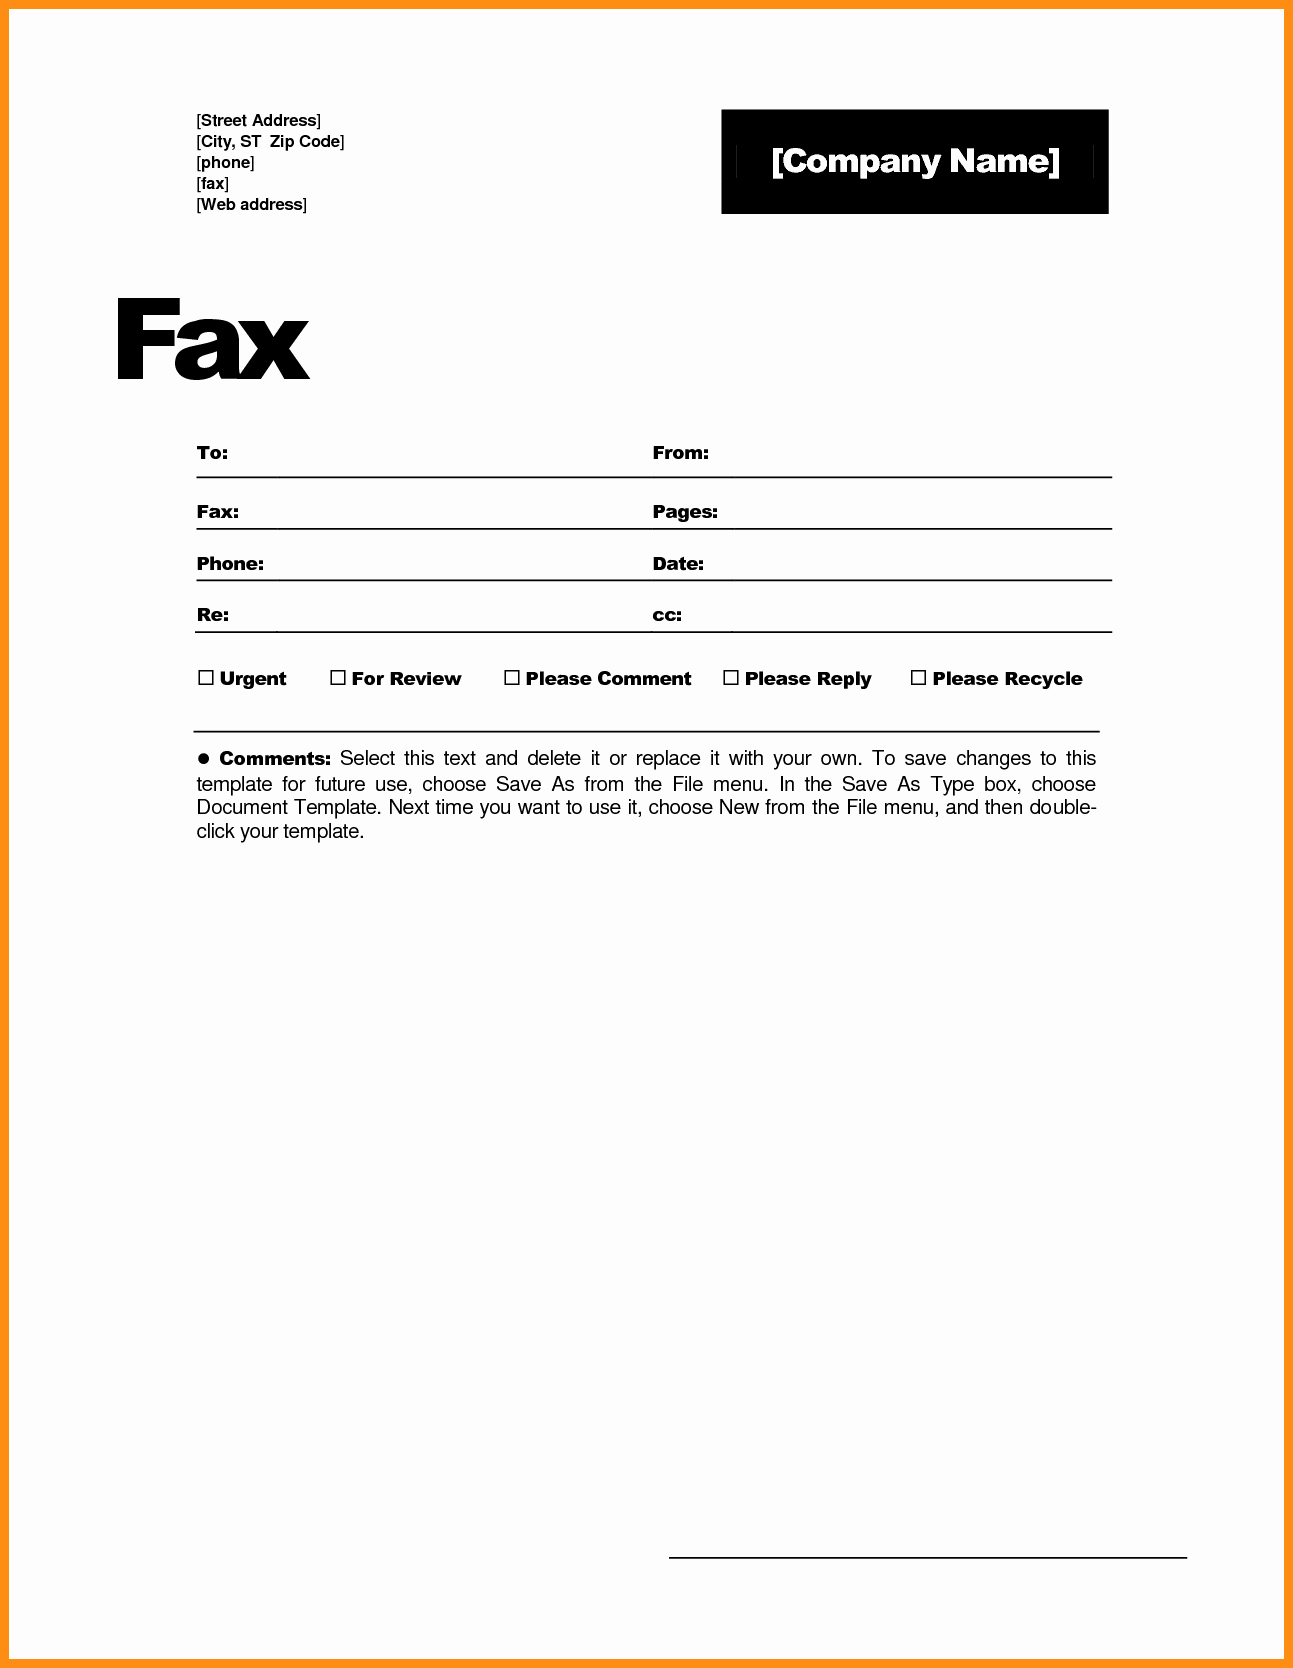 Fax Cover Sheet Word Template Lovely 6 Free Fax Cover Sheet Template Word